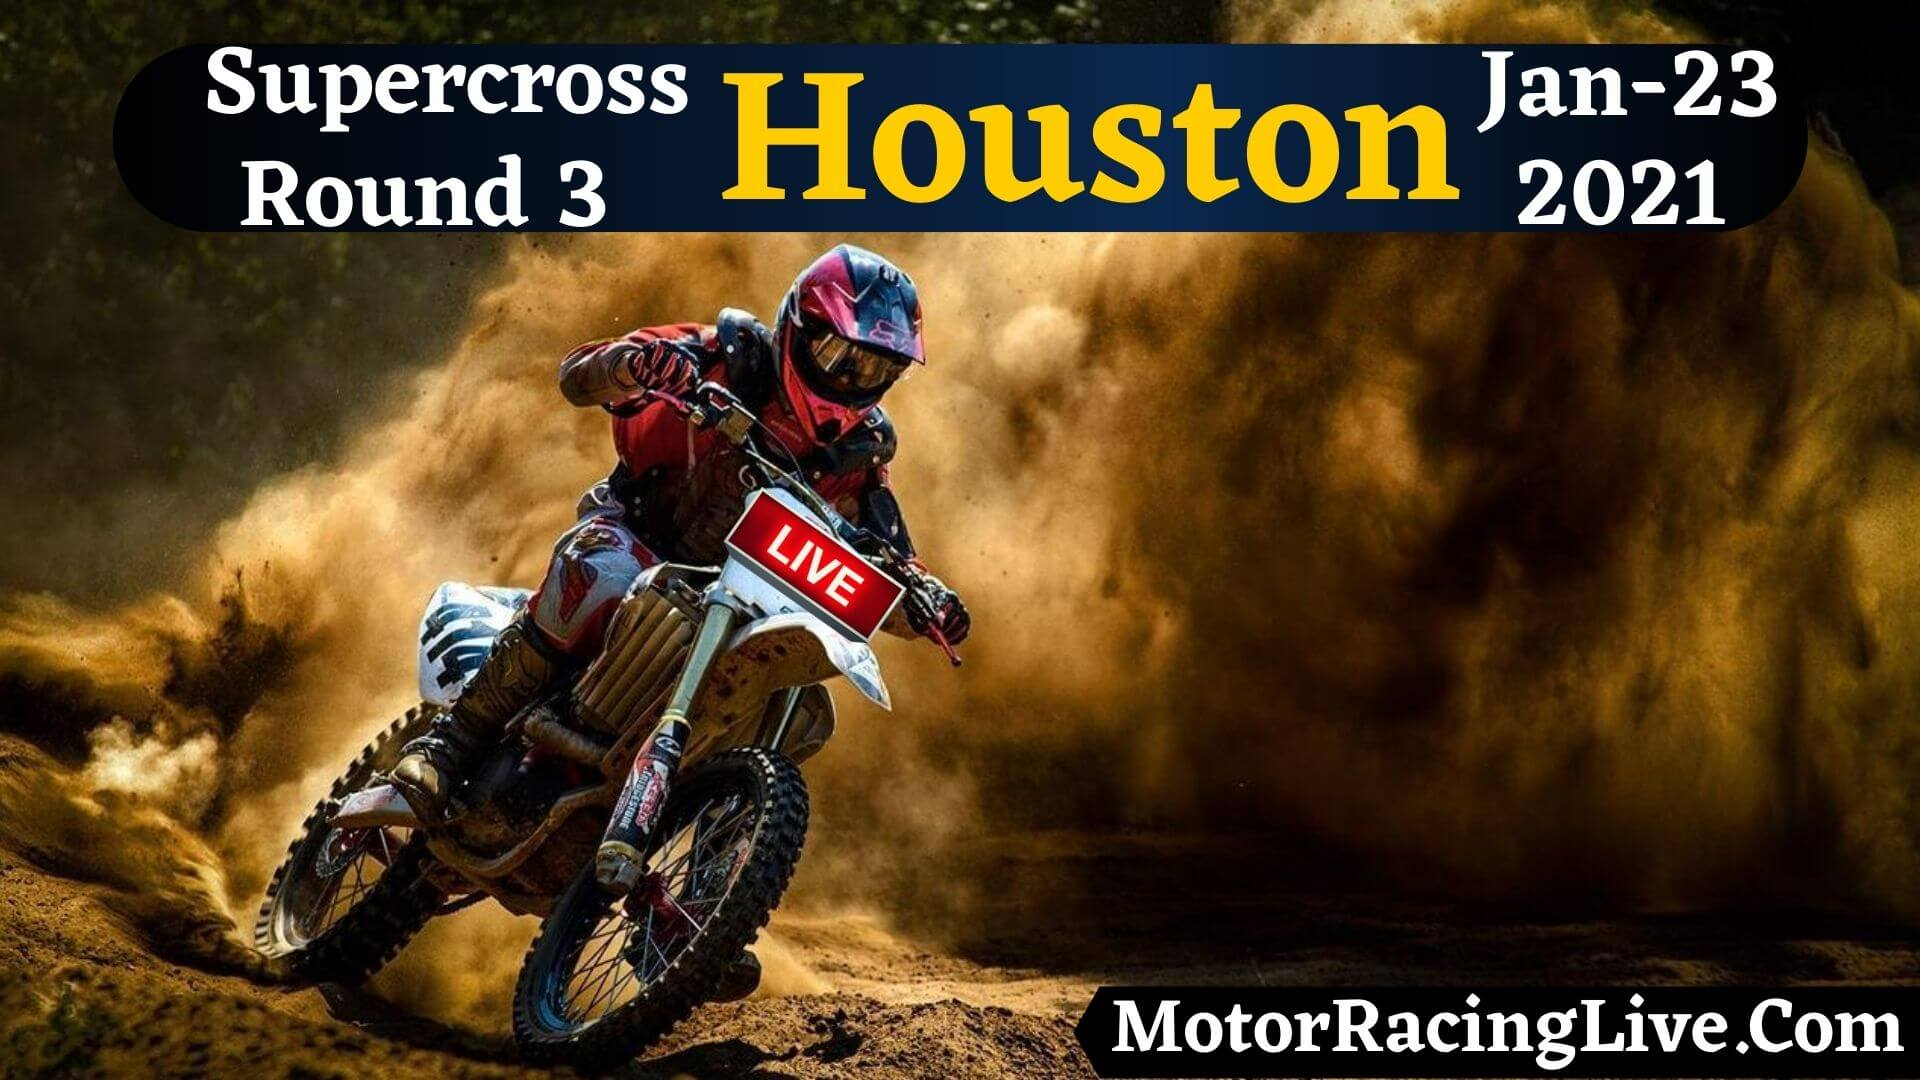 Supercross Houston Round 3 Live Stream 23-Jan 2021